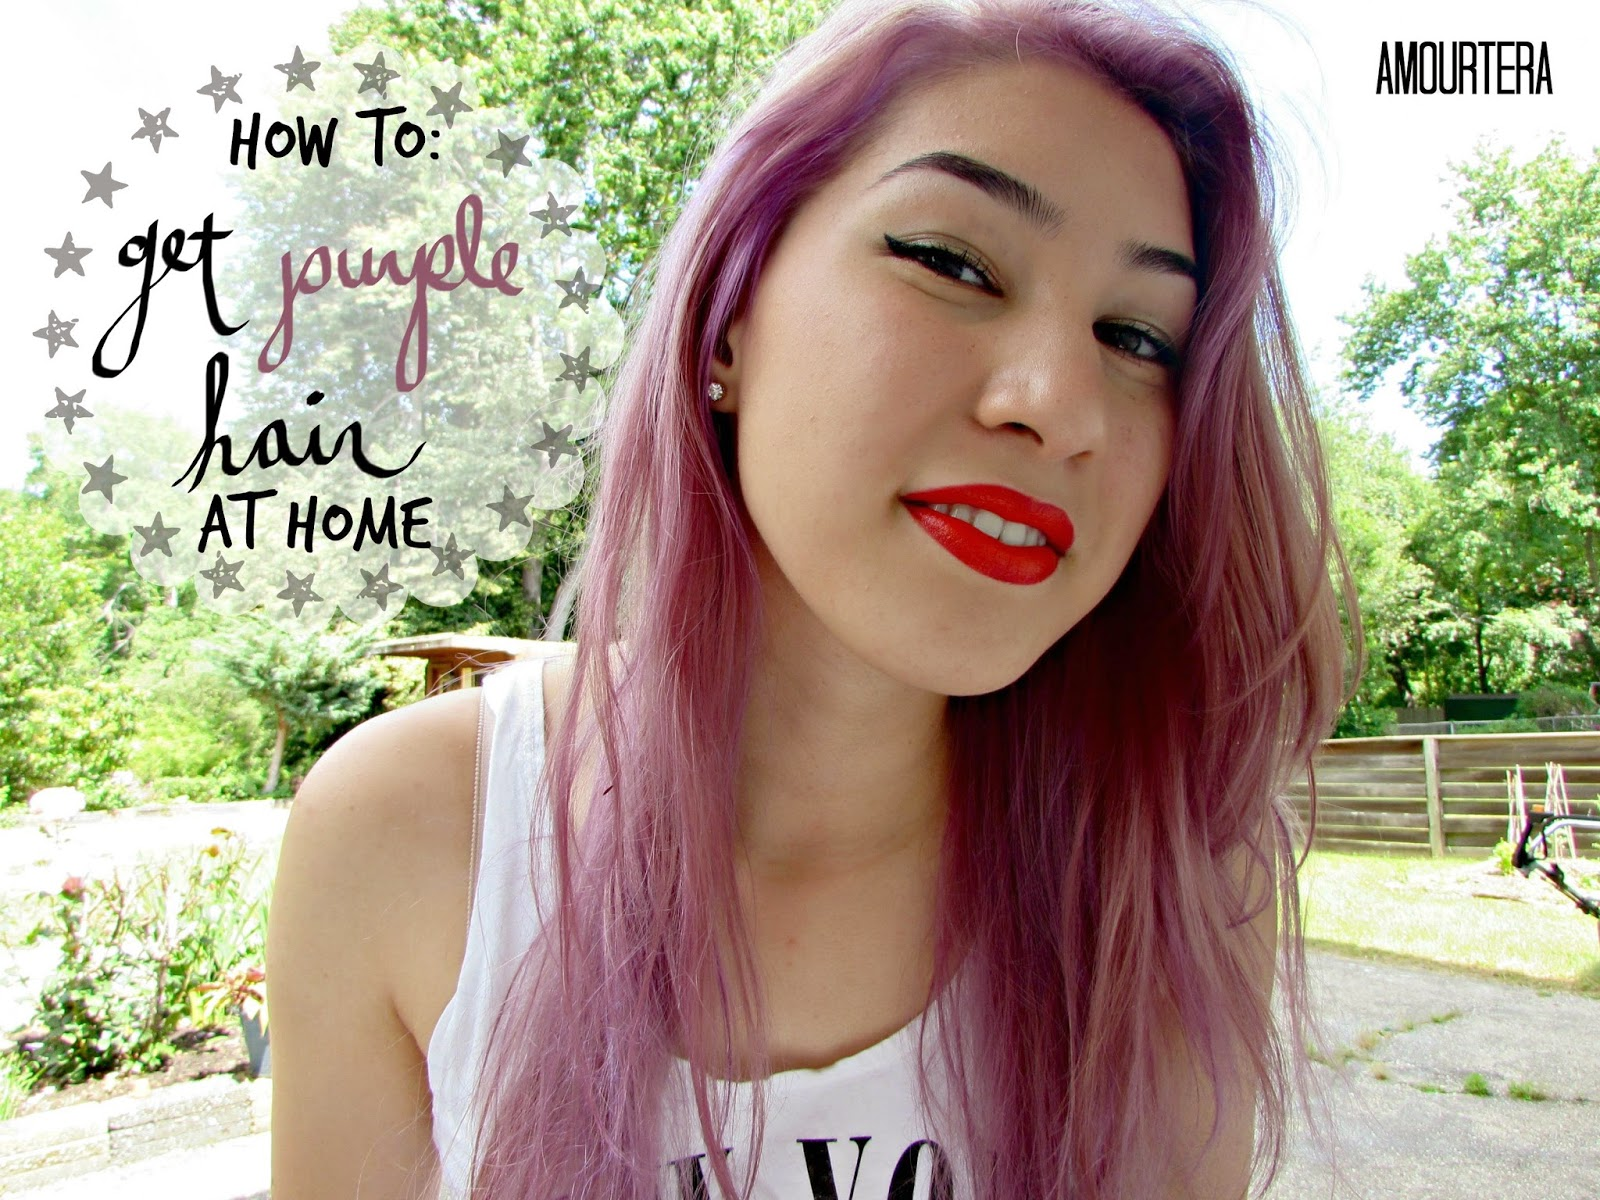 how to get purple hair at home amourtera